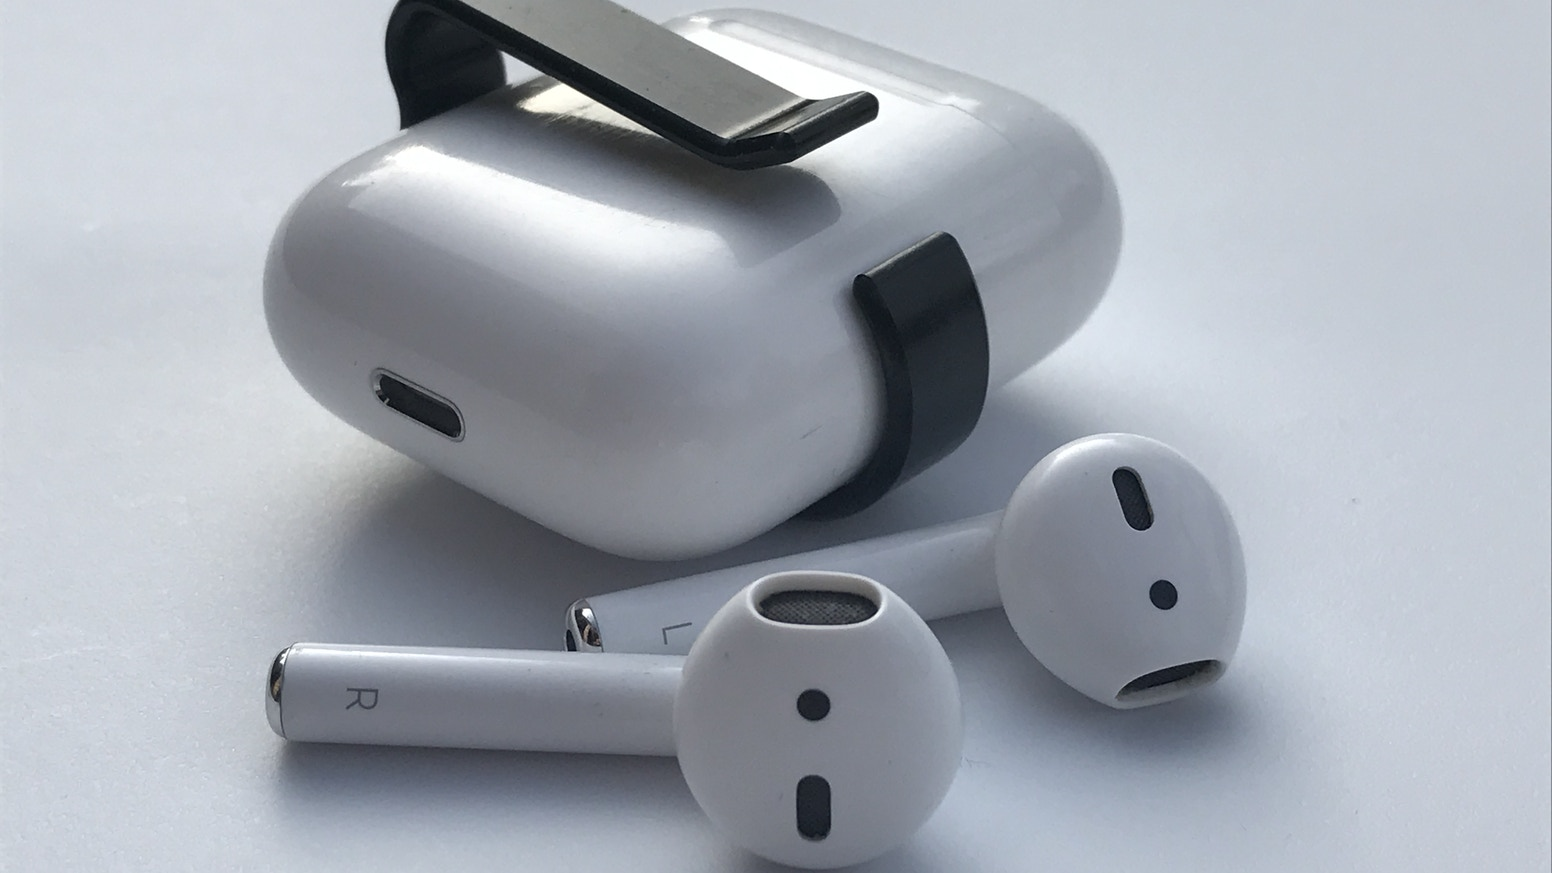 We have designed a billet aluminum clip for Apple AirPods that maintains the sleek minimalist look and feel that Apple has created.